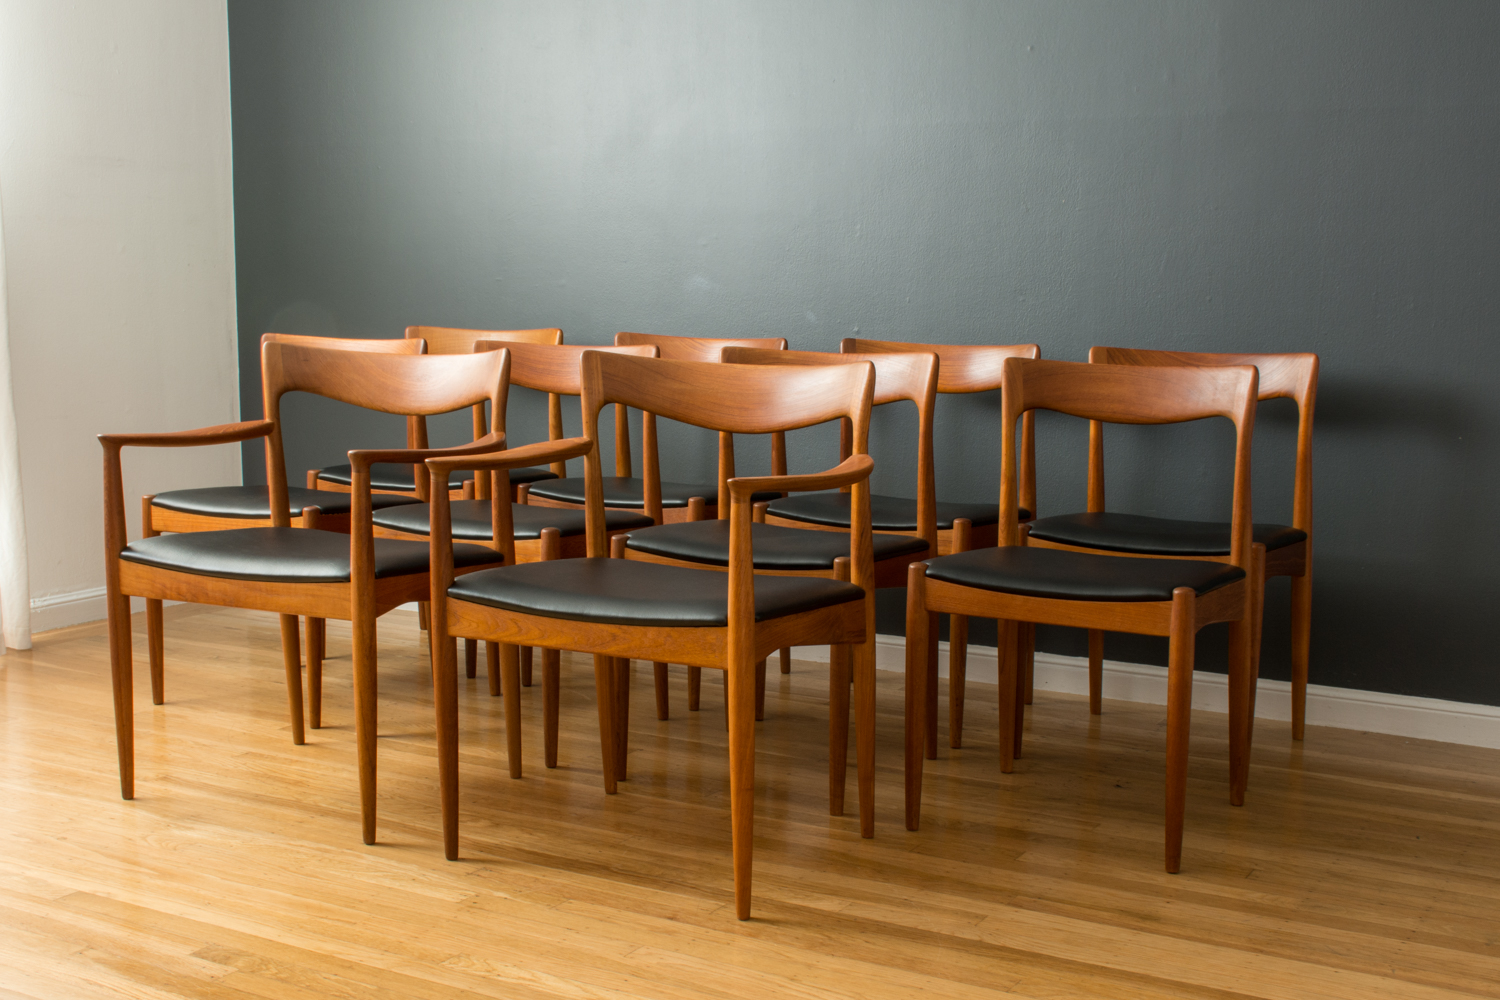 Set of Ten Danish Modern Teak Dining Chairs by Henry Rosengren Hansen